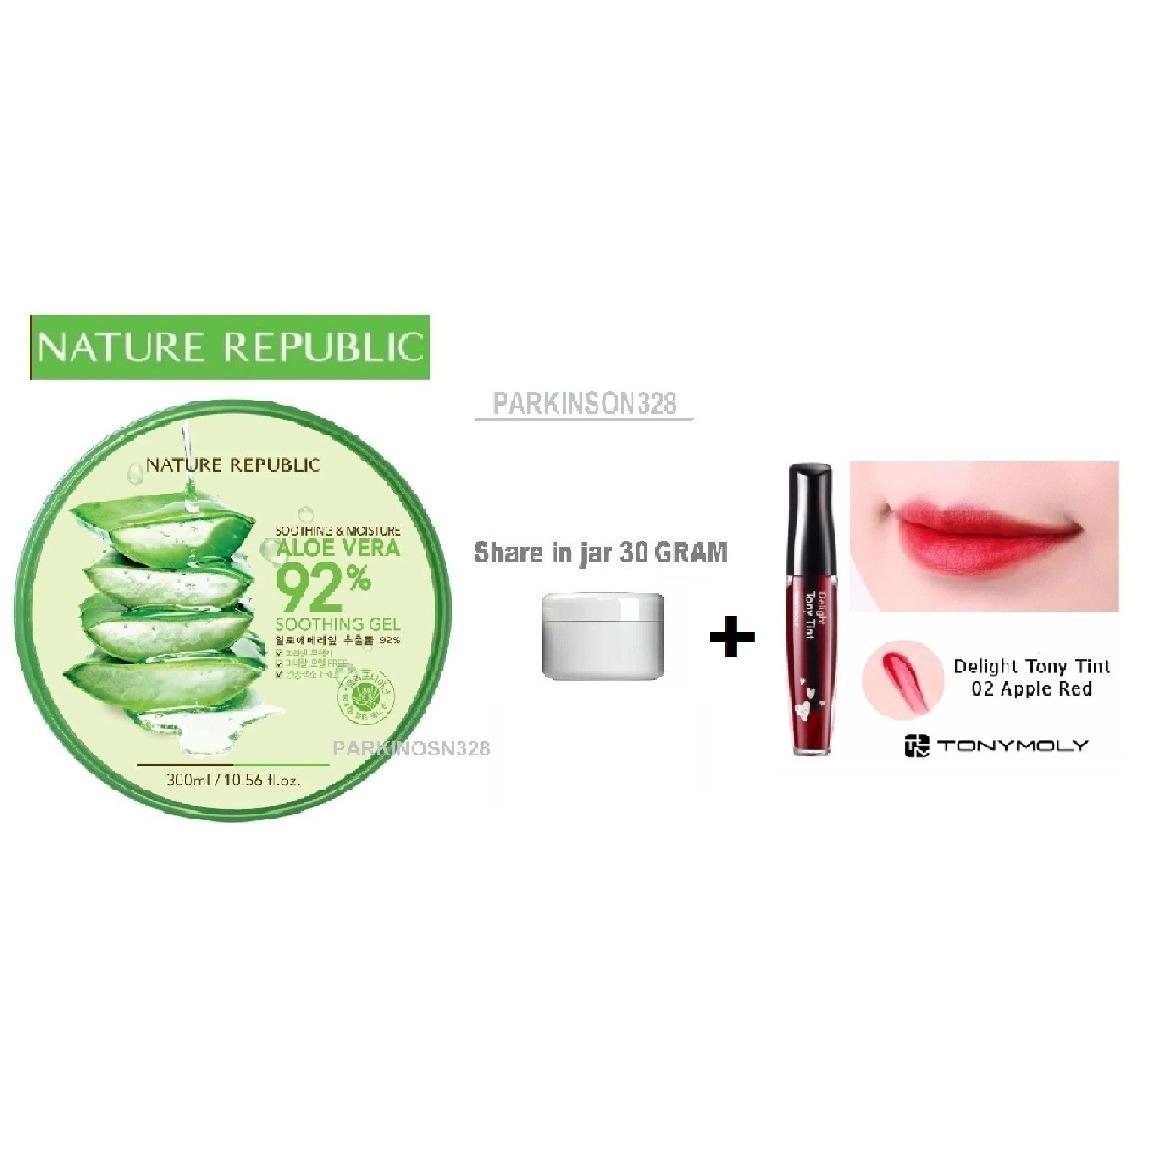 Beli Nature Republic Soothing Moisture Aloe Vera 92 Gel Original Korea Share In Jar 30 Gram Tony Moly Delight Tint Original 02 Apple Red 1 Buah Free Packing Bubble Wrap Nature Republic Online